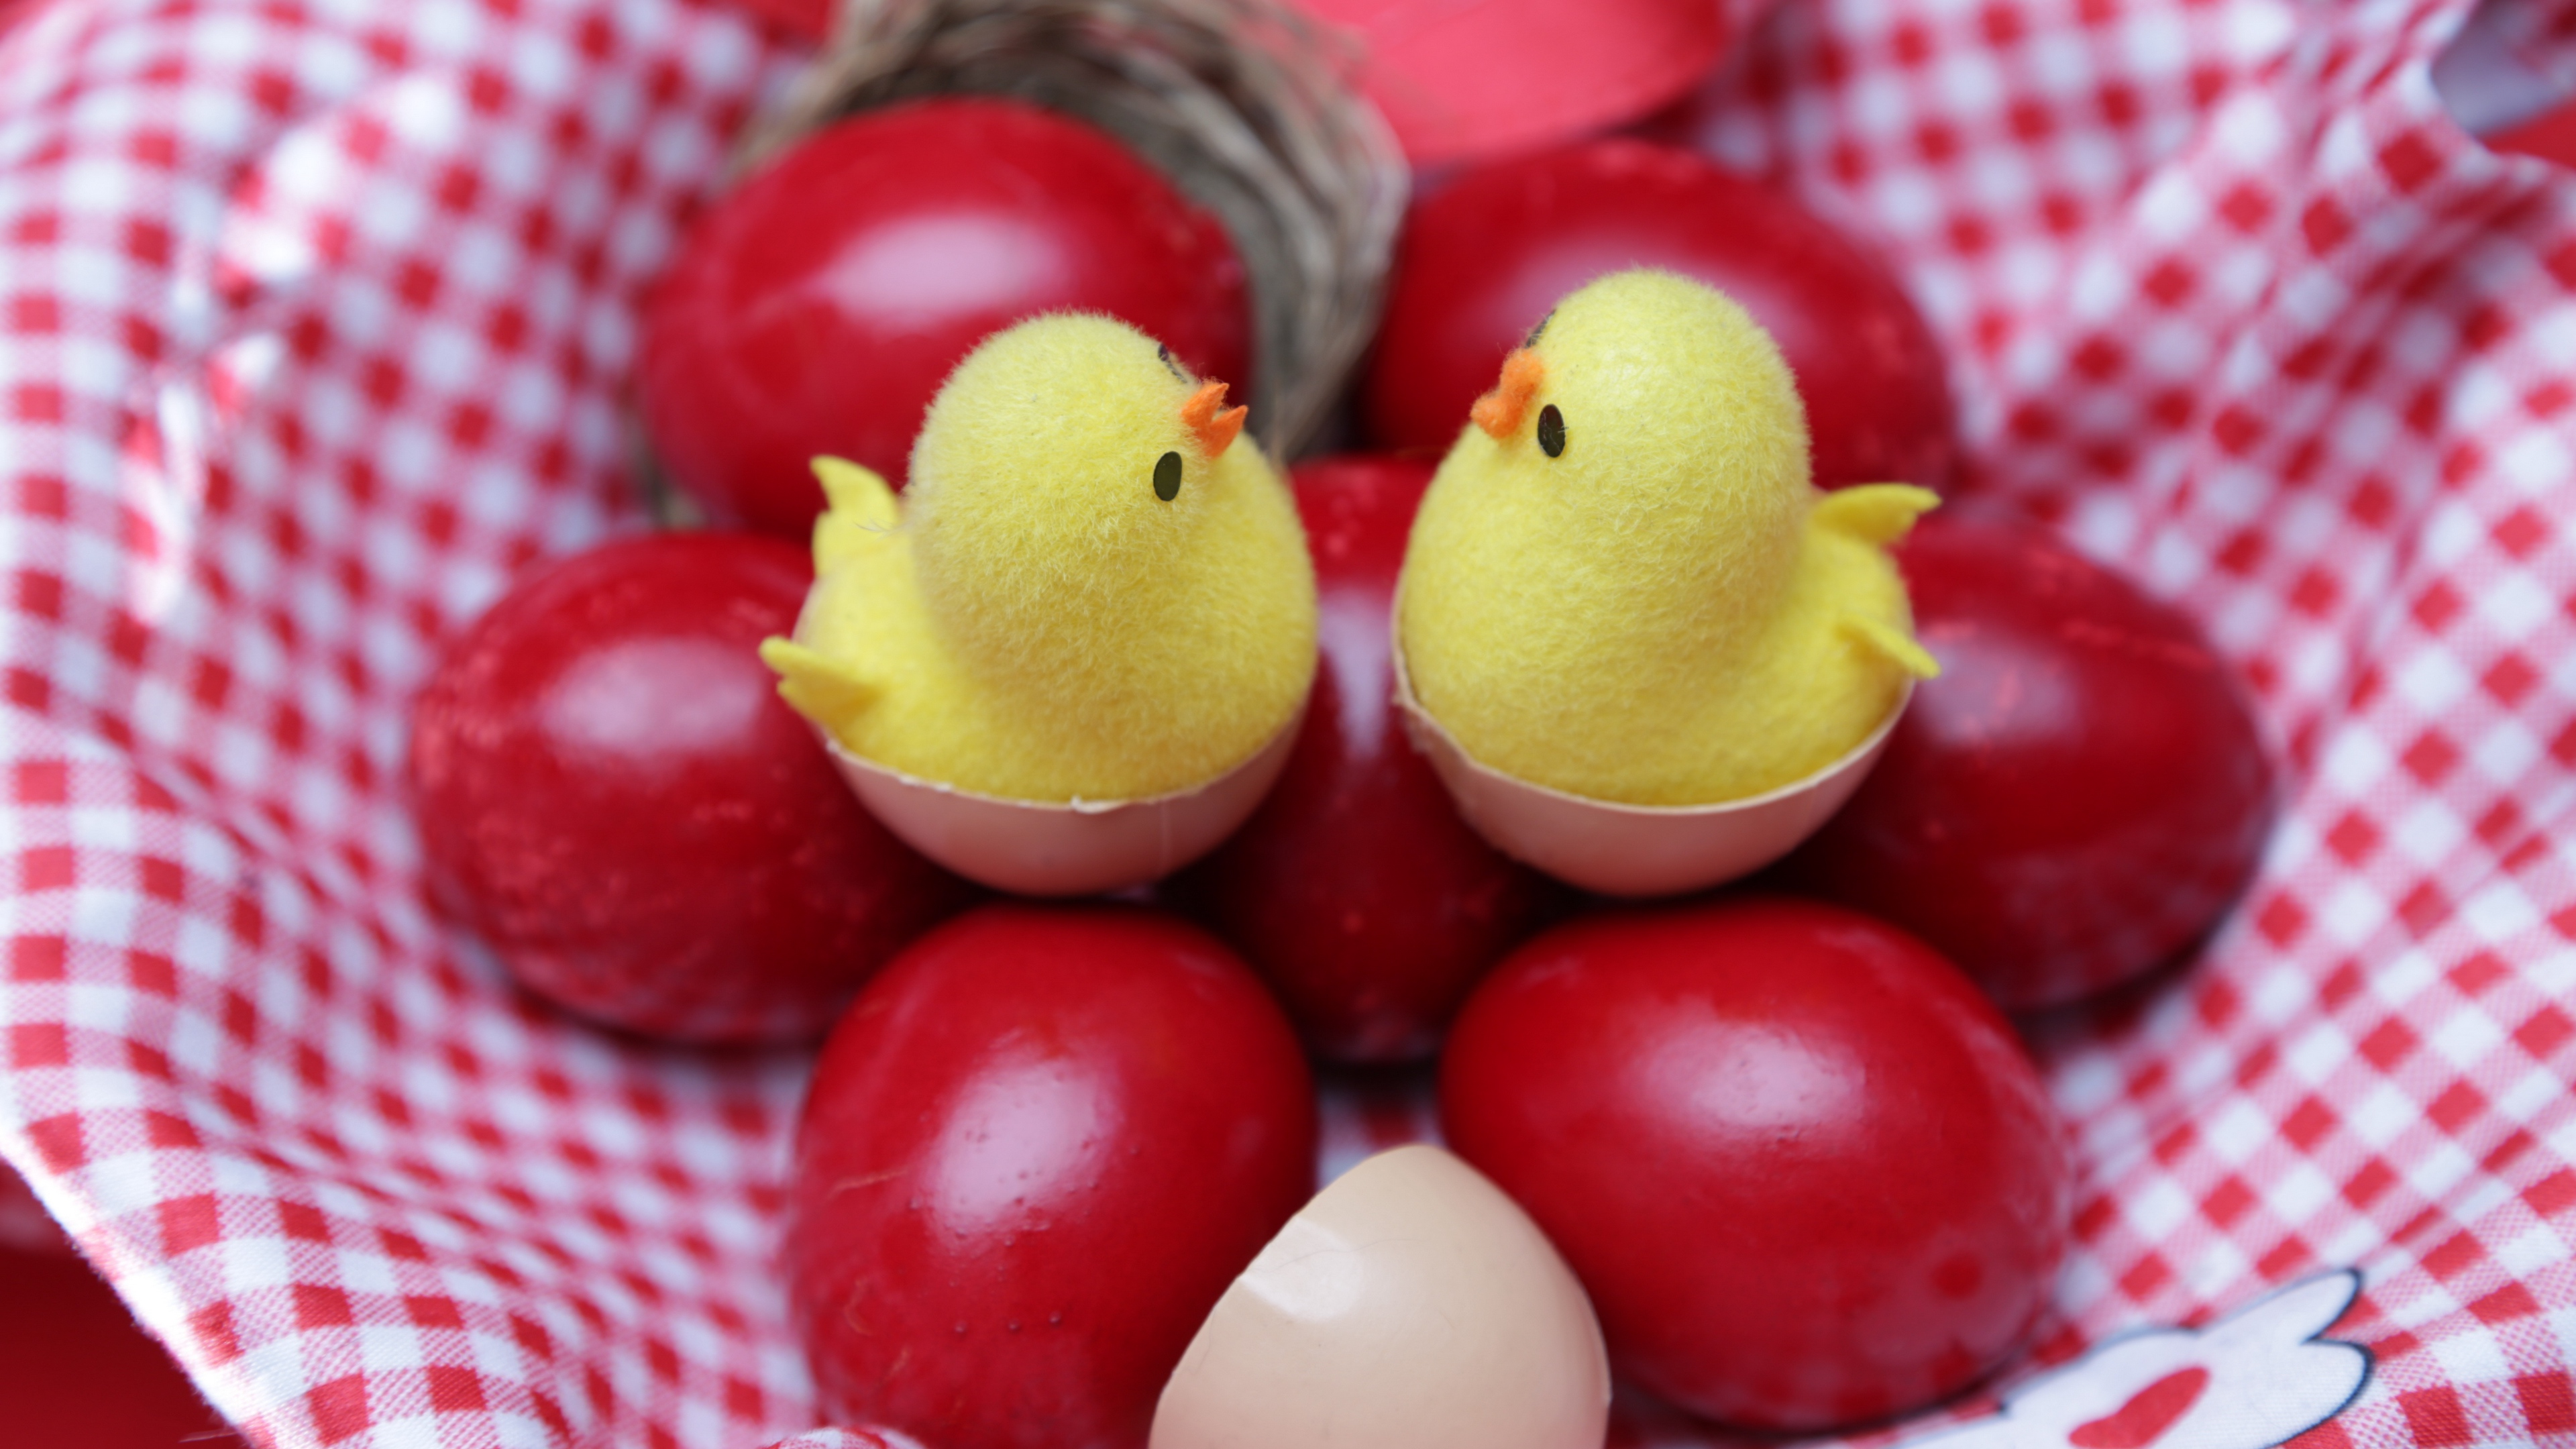 easter easter eggs cloth chickens 4k 1538344478 - easter, easter eggs, cloth, chickens 4k - easter eggs, Easter, cloth